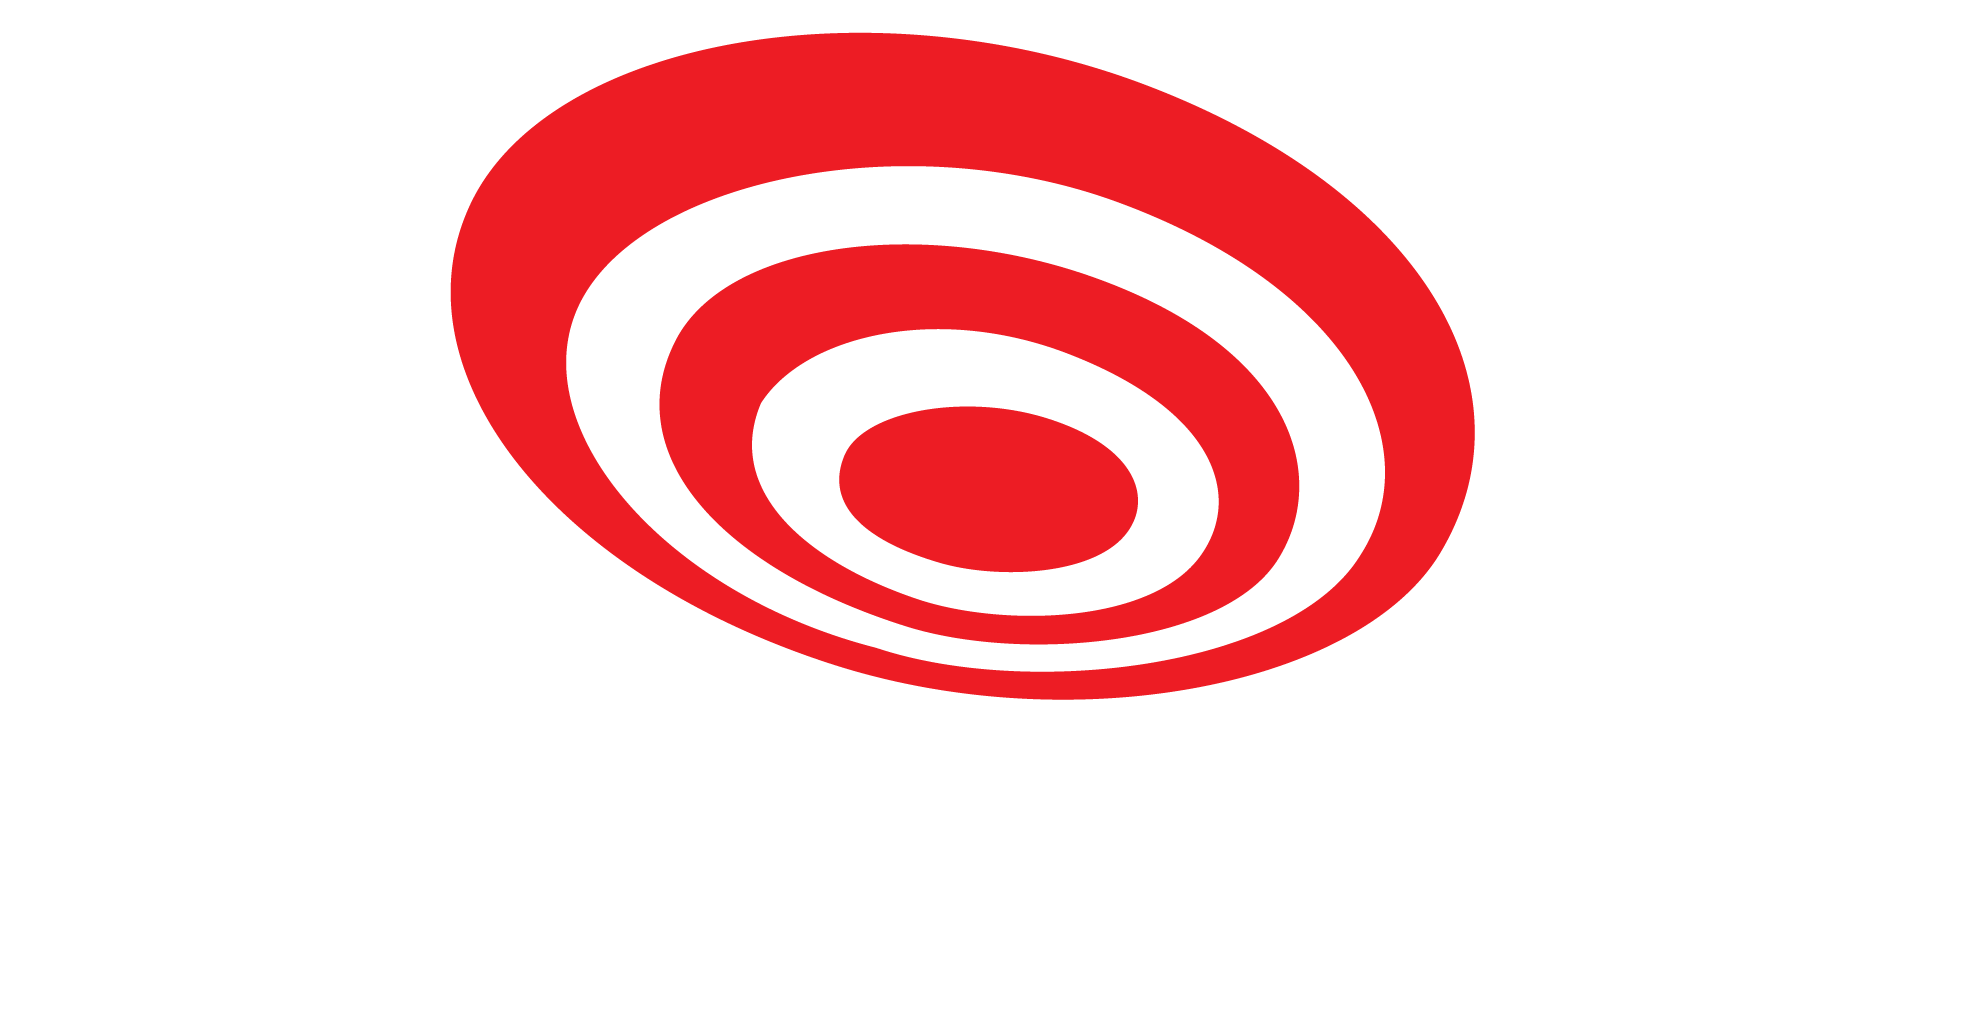 Sound Workshop